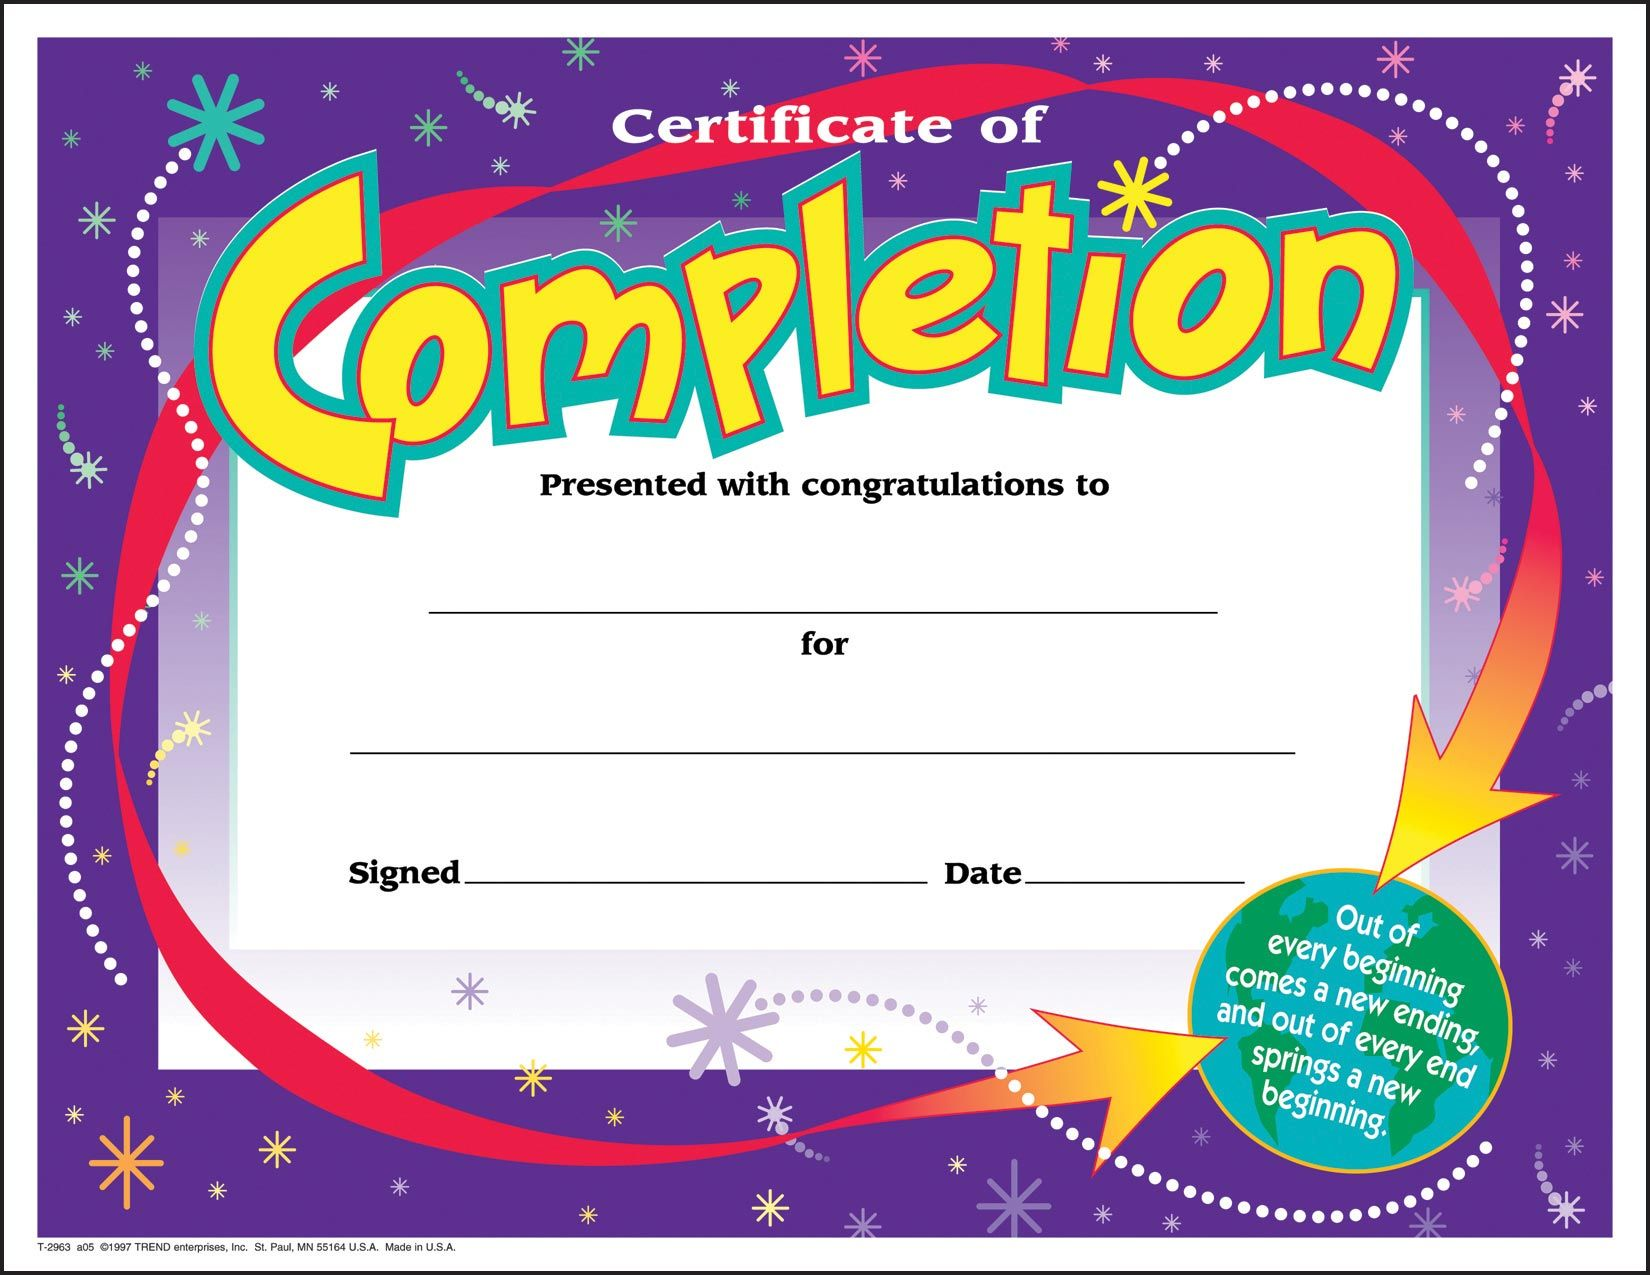 30 Certificates of Completion (large) certificate award pack by TREND